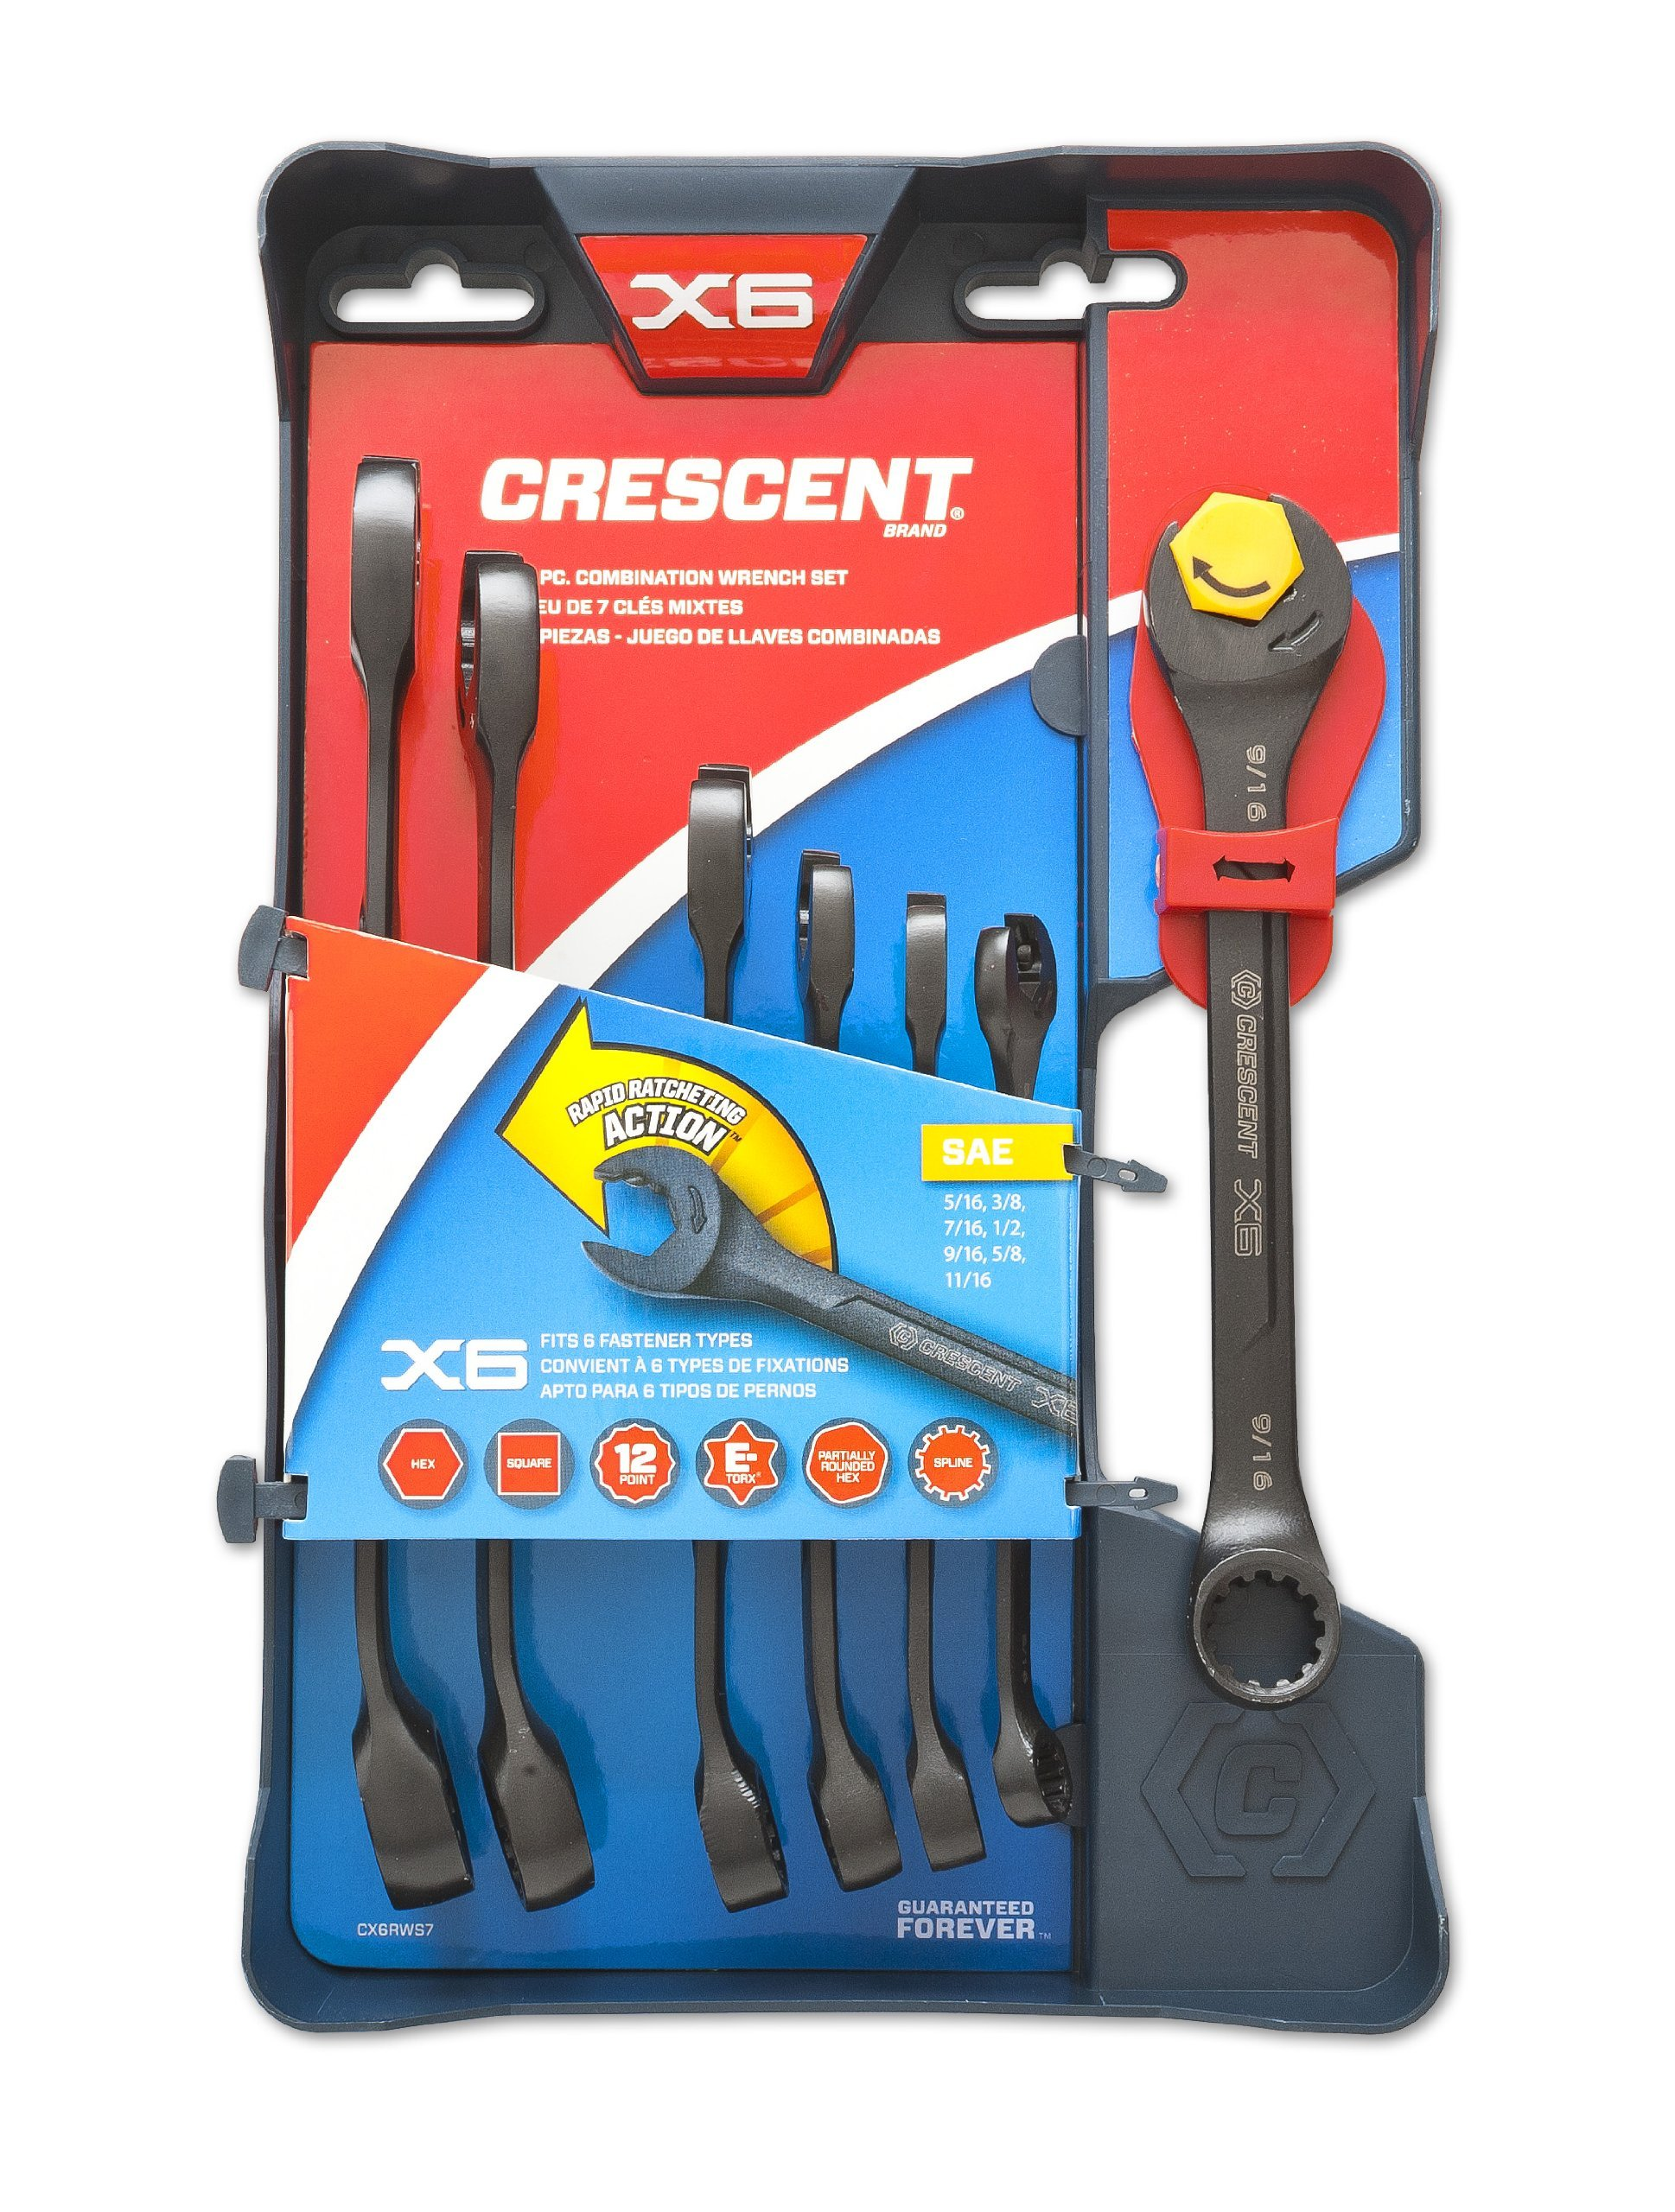 crescent cptaw8 home hand tools wrenches adjustable sets crescent home improvement. Black Bedroom Furniture Sets. Home Design Ideas